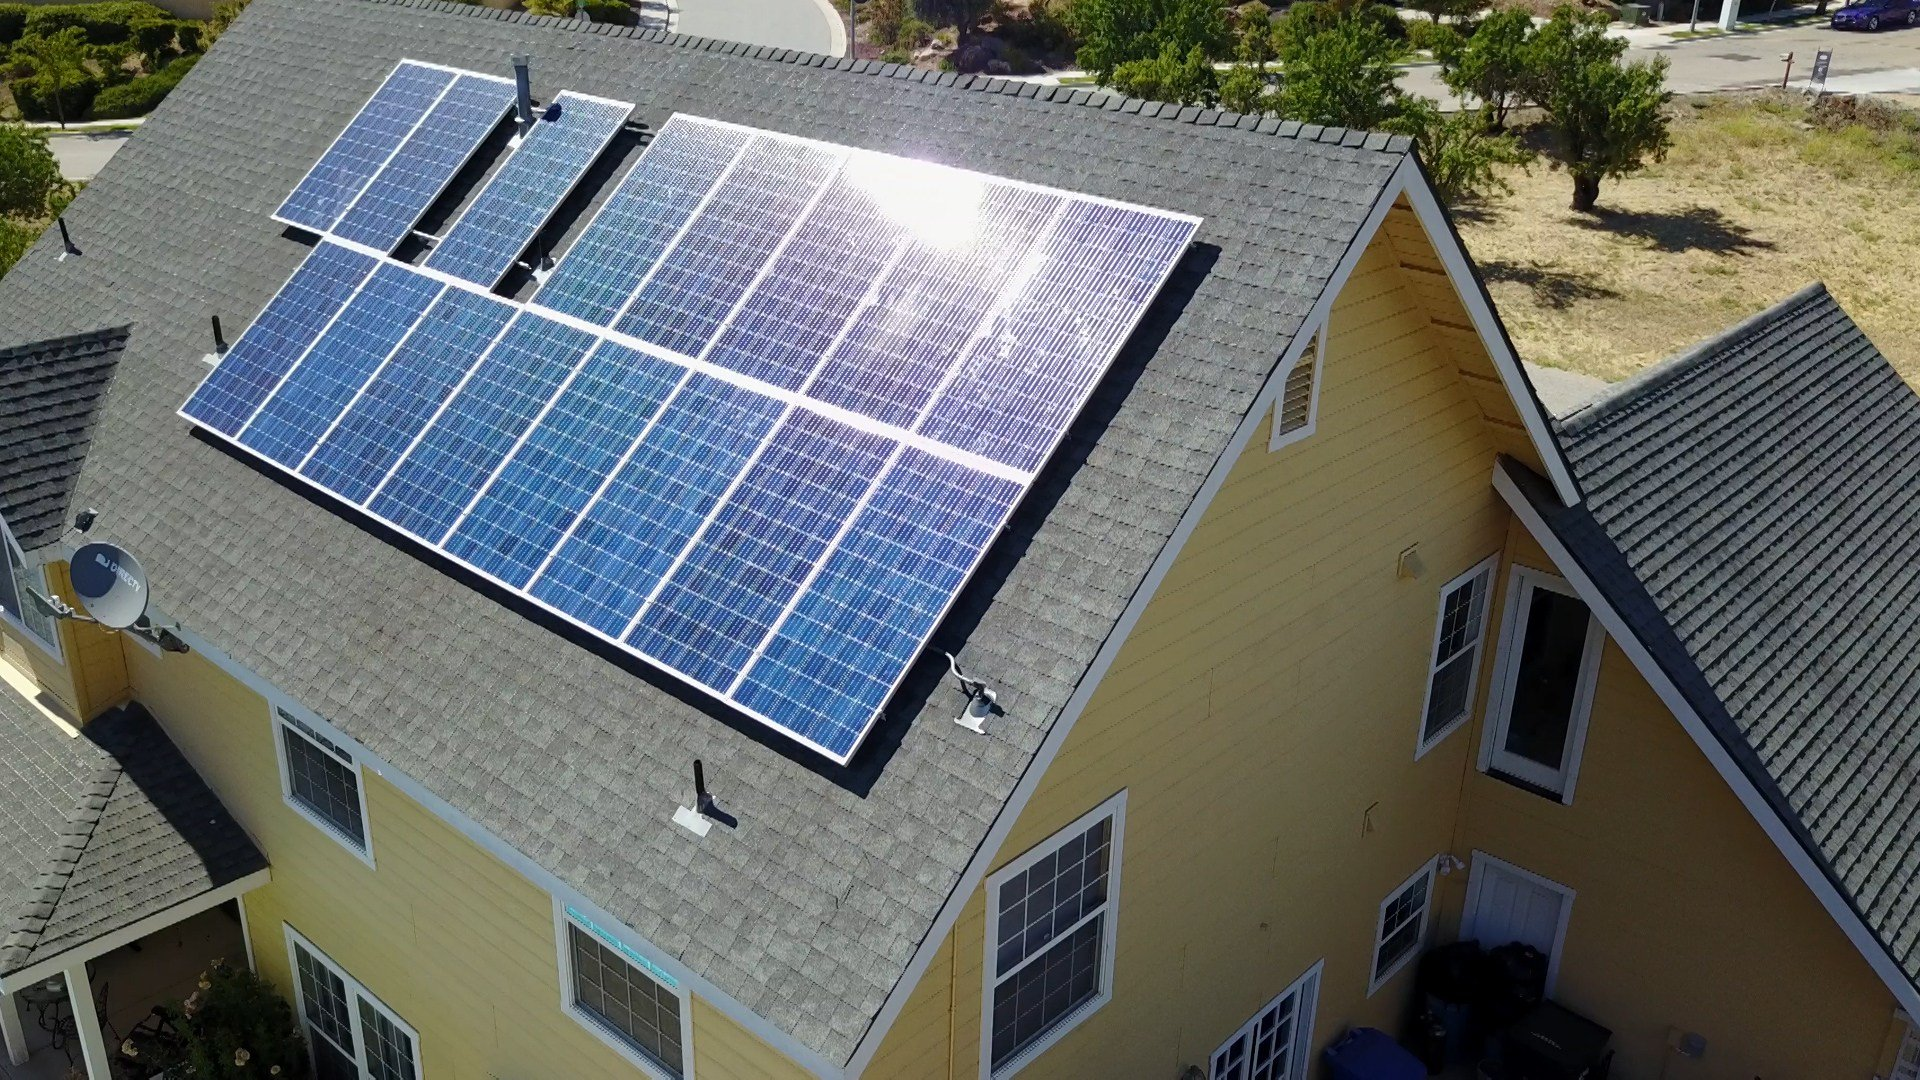 Solar Panel Requirement For New California Homes Clears Hurdle